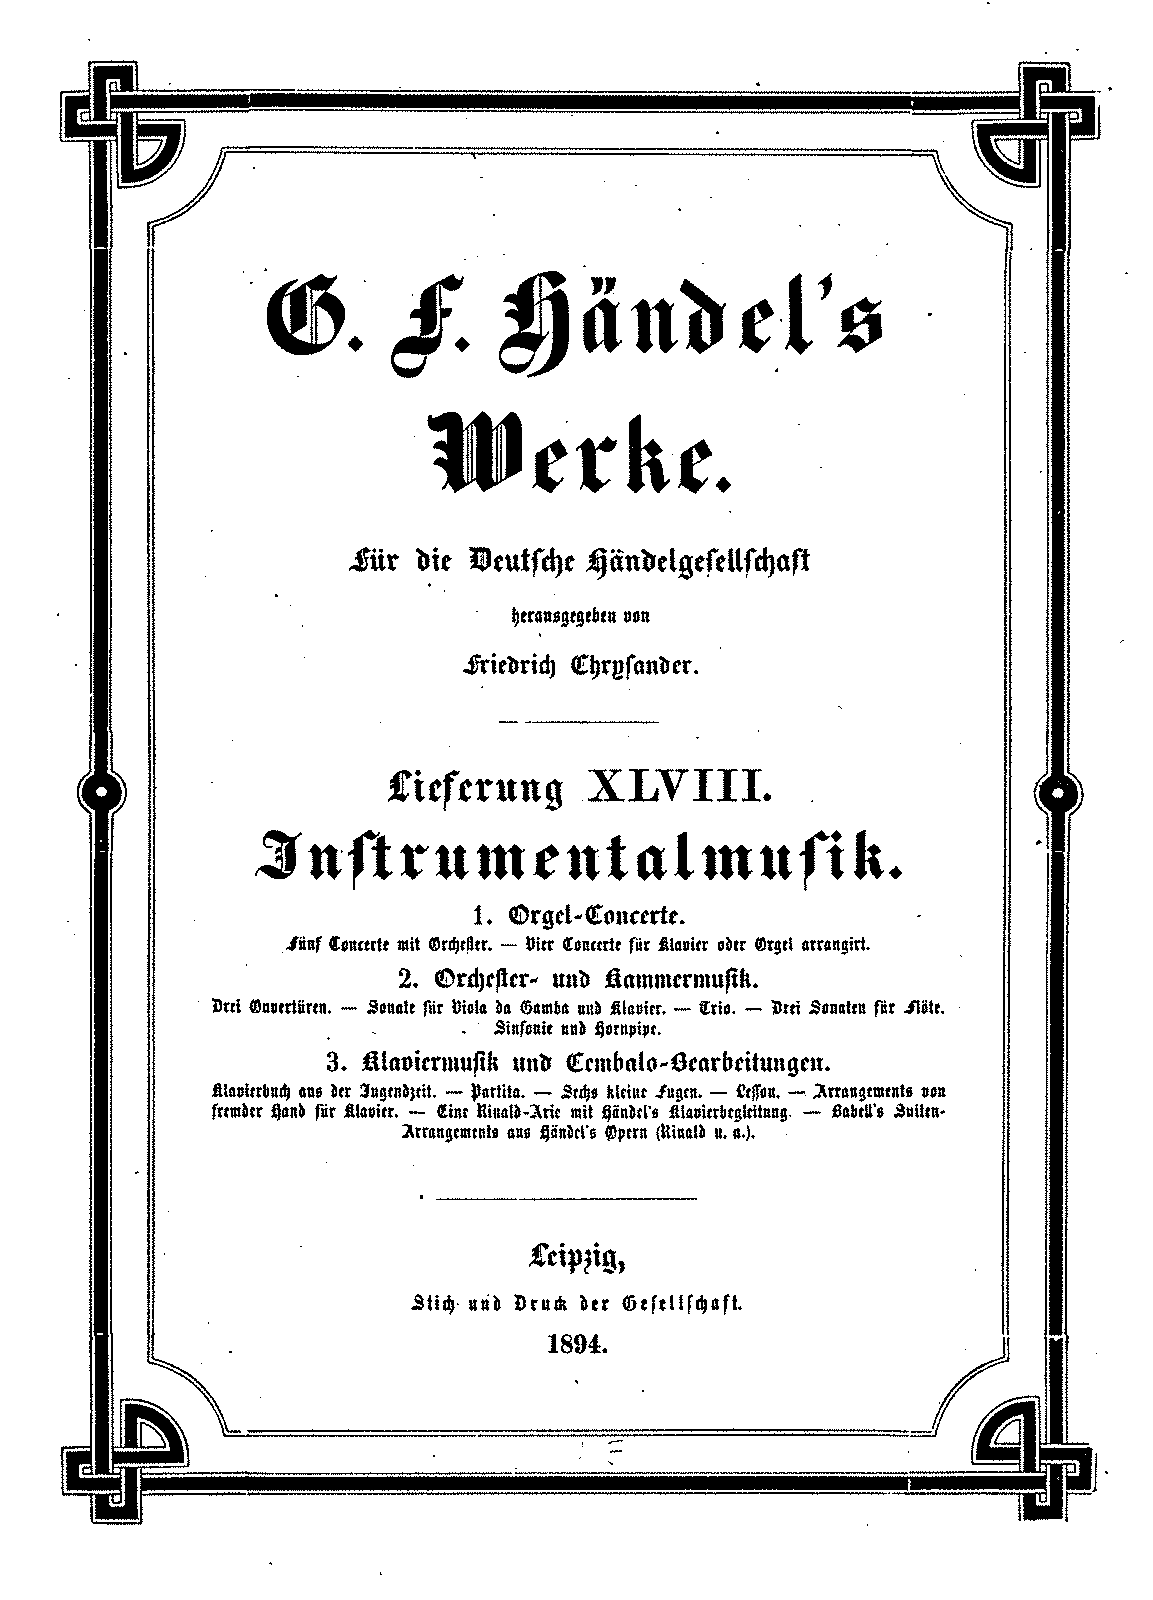 PMLP51475-Handel - Sonata for Viola da Gamba and Harpsichord 1894 score.pdf